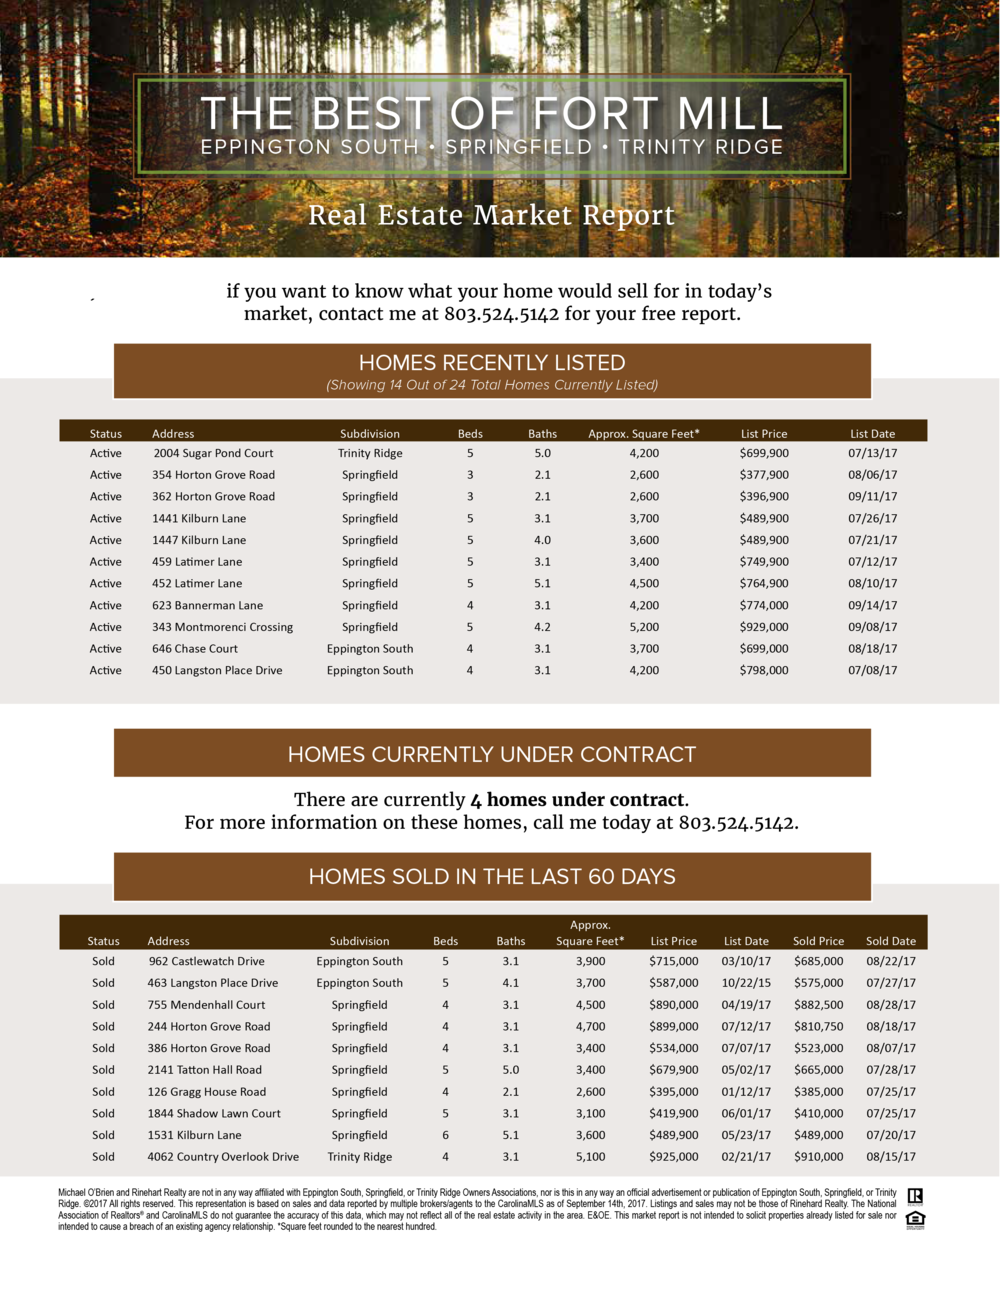 Market Reports - If you want to know what your home will sell for in today's market, contact us for your free report...